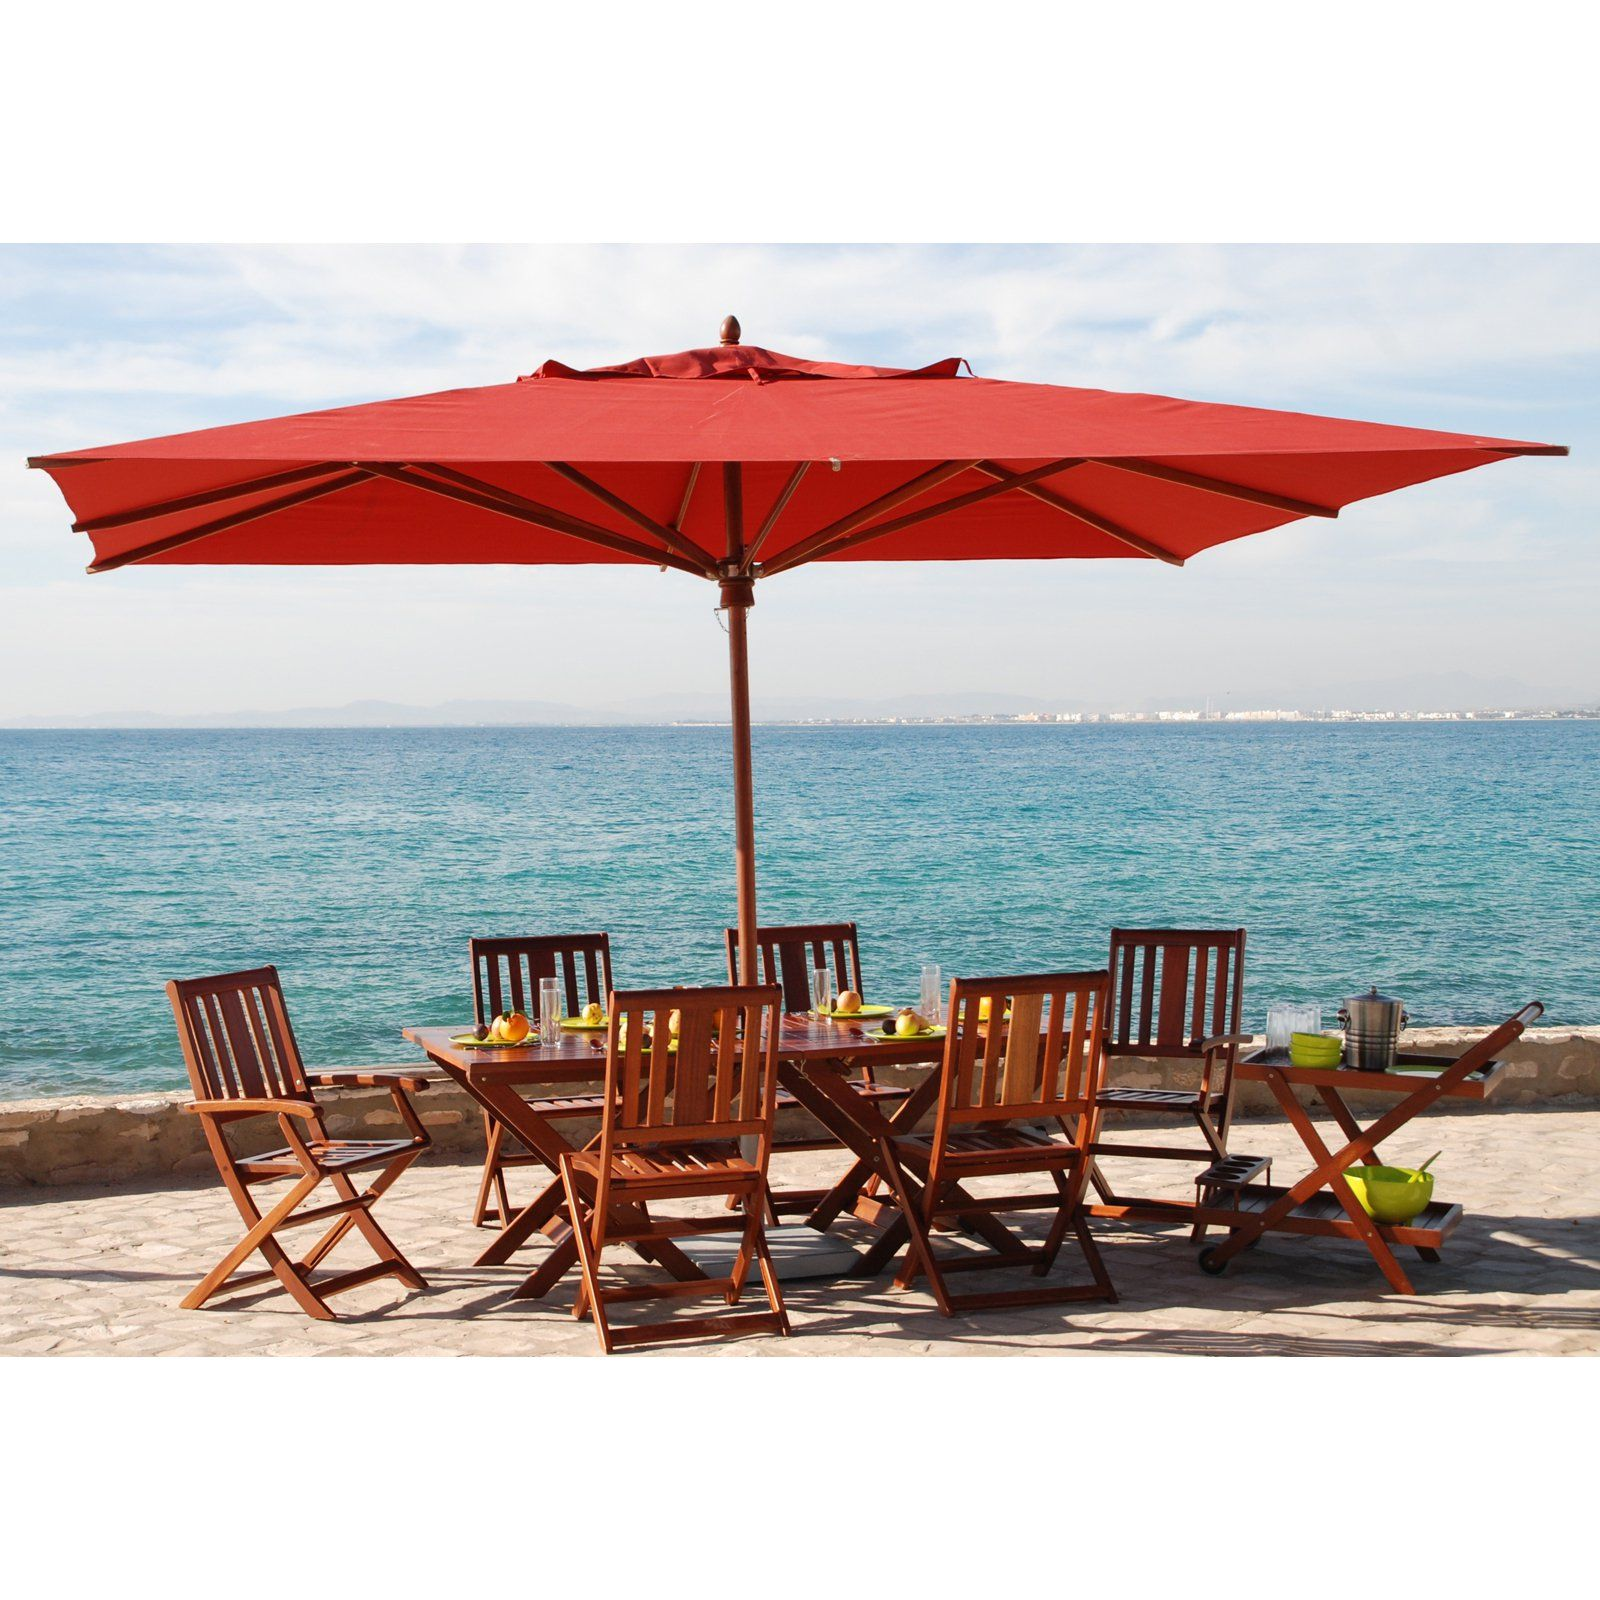 ideas coral large image button staggeringtra full size coverextra mosquito patio resistant umbrellasextra push coast staggering wind curved poly extra tilt wooden with rectangular spun of umbrella umbrellas ft stand